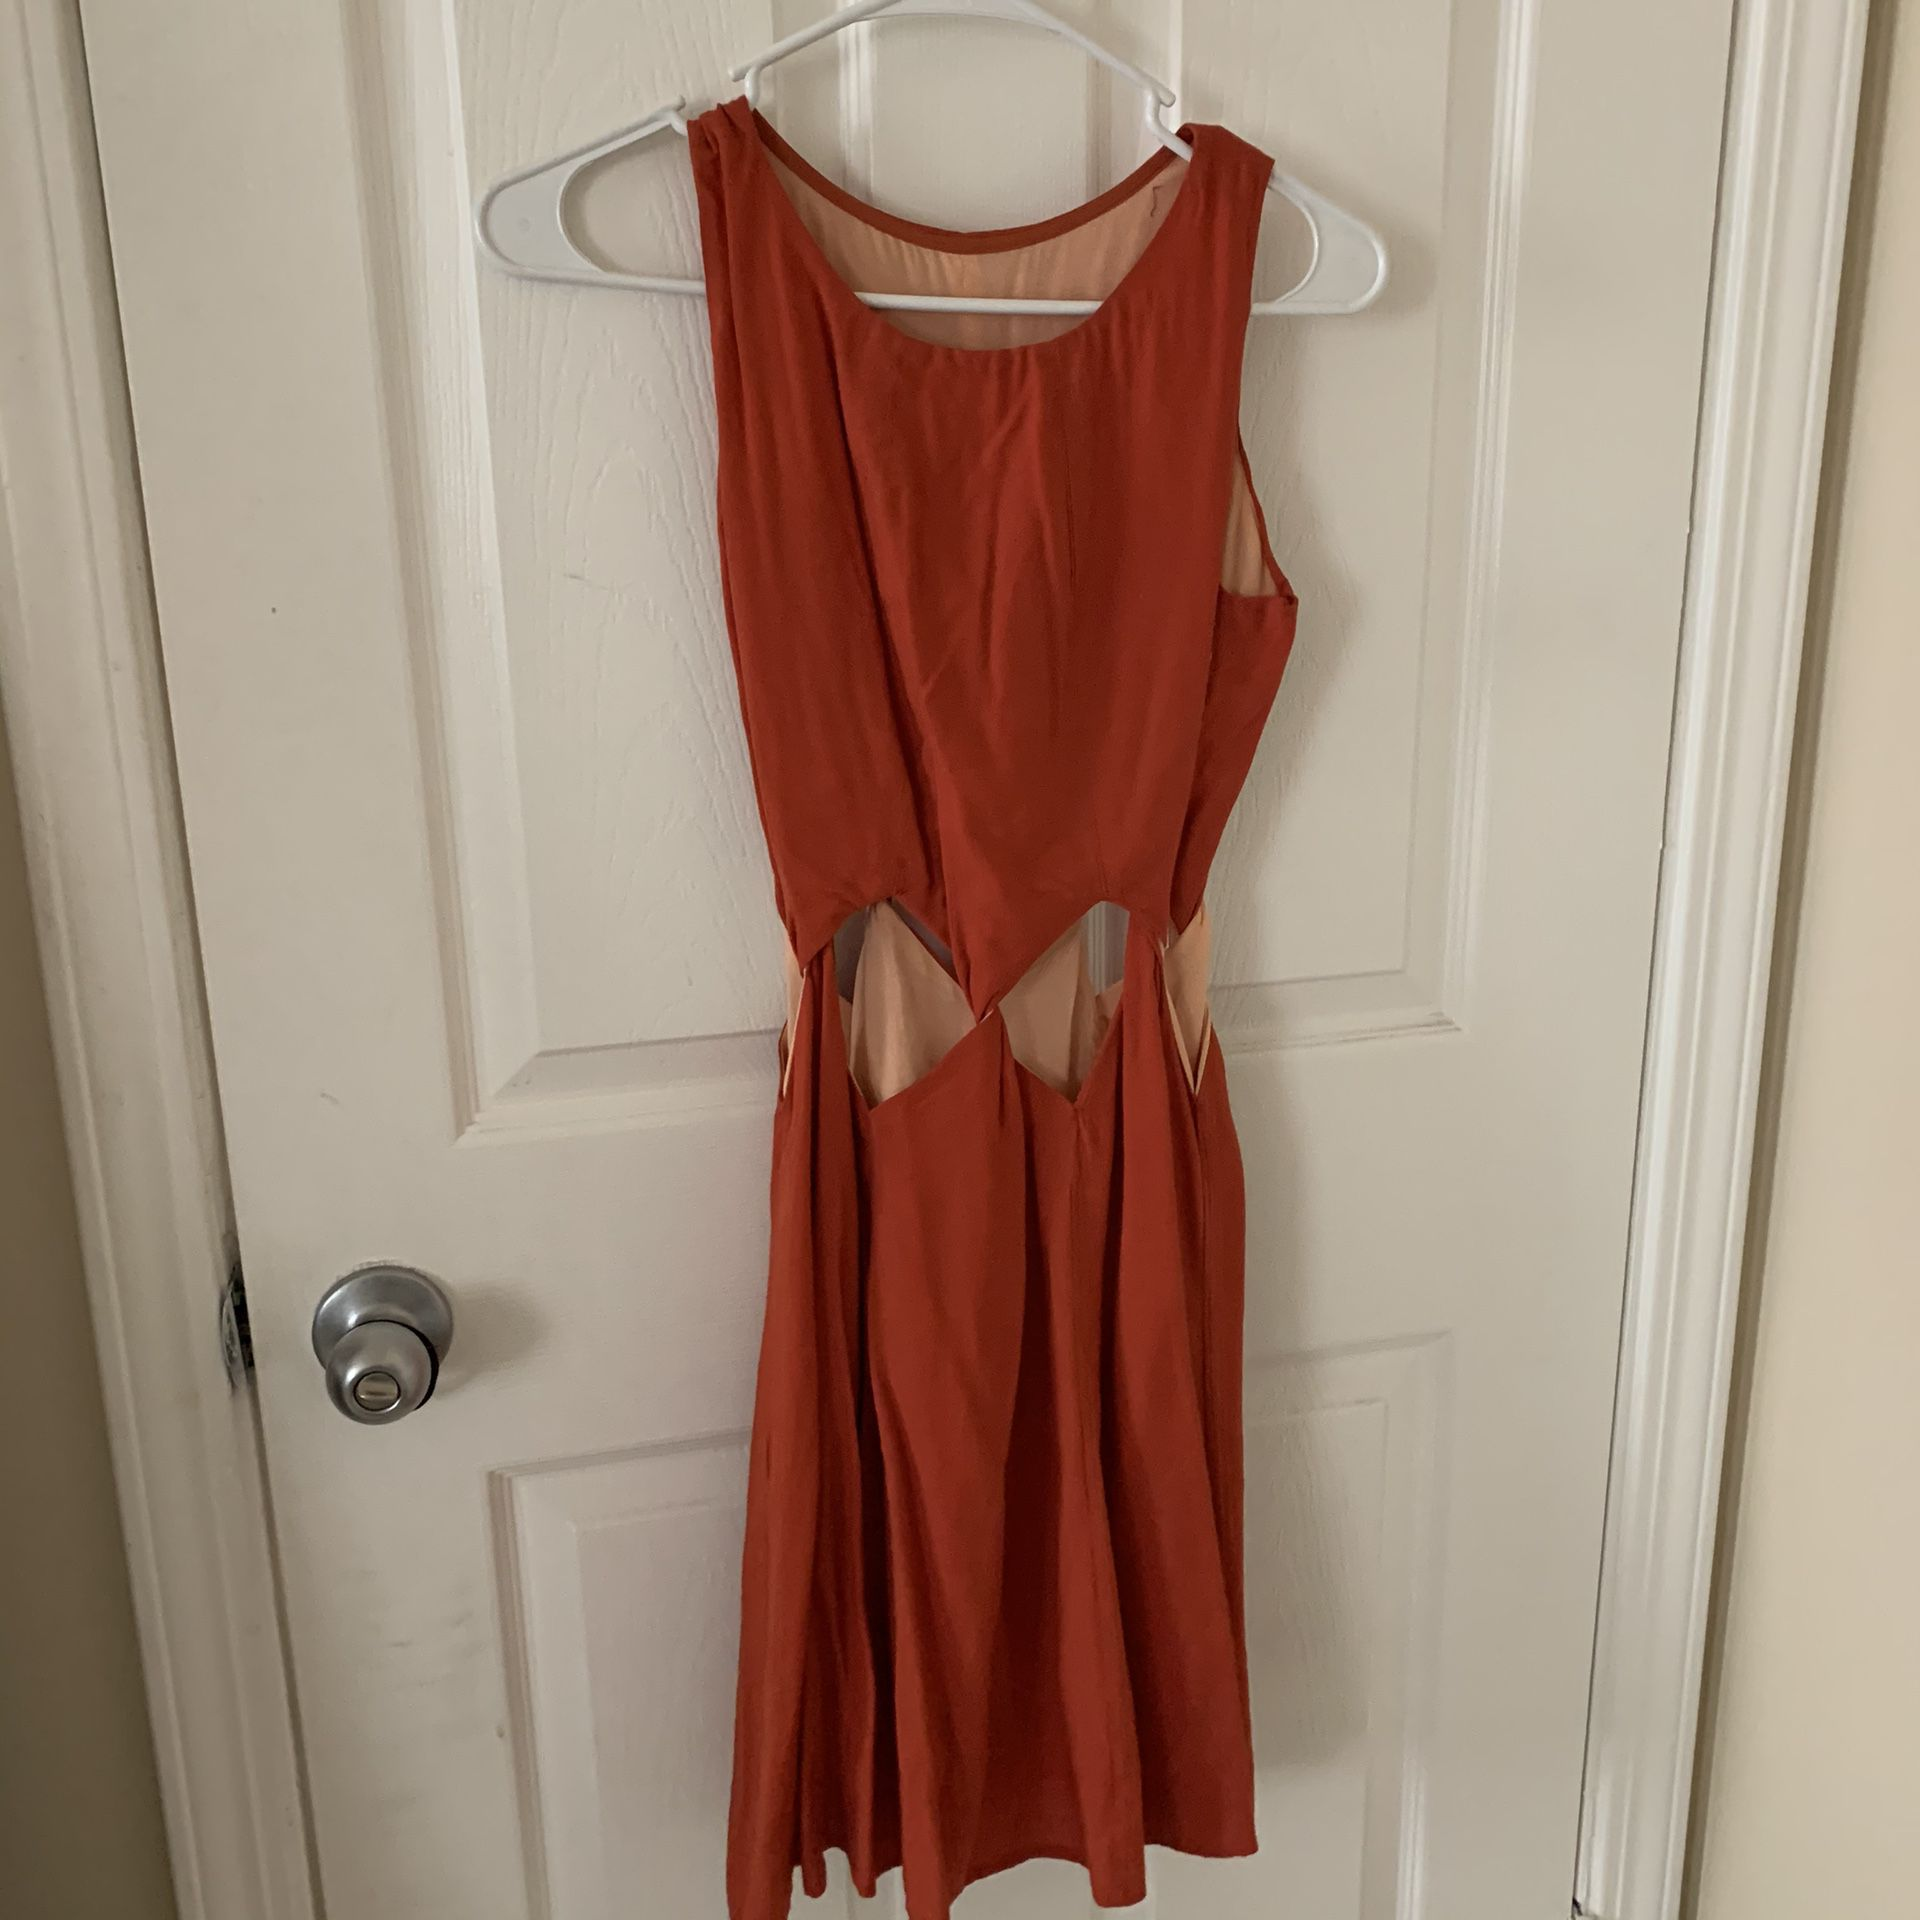 Urban Outfitters Women's Small Reversible Dress